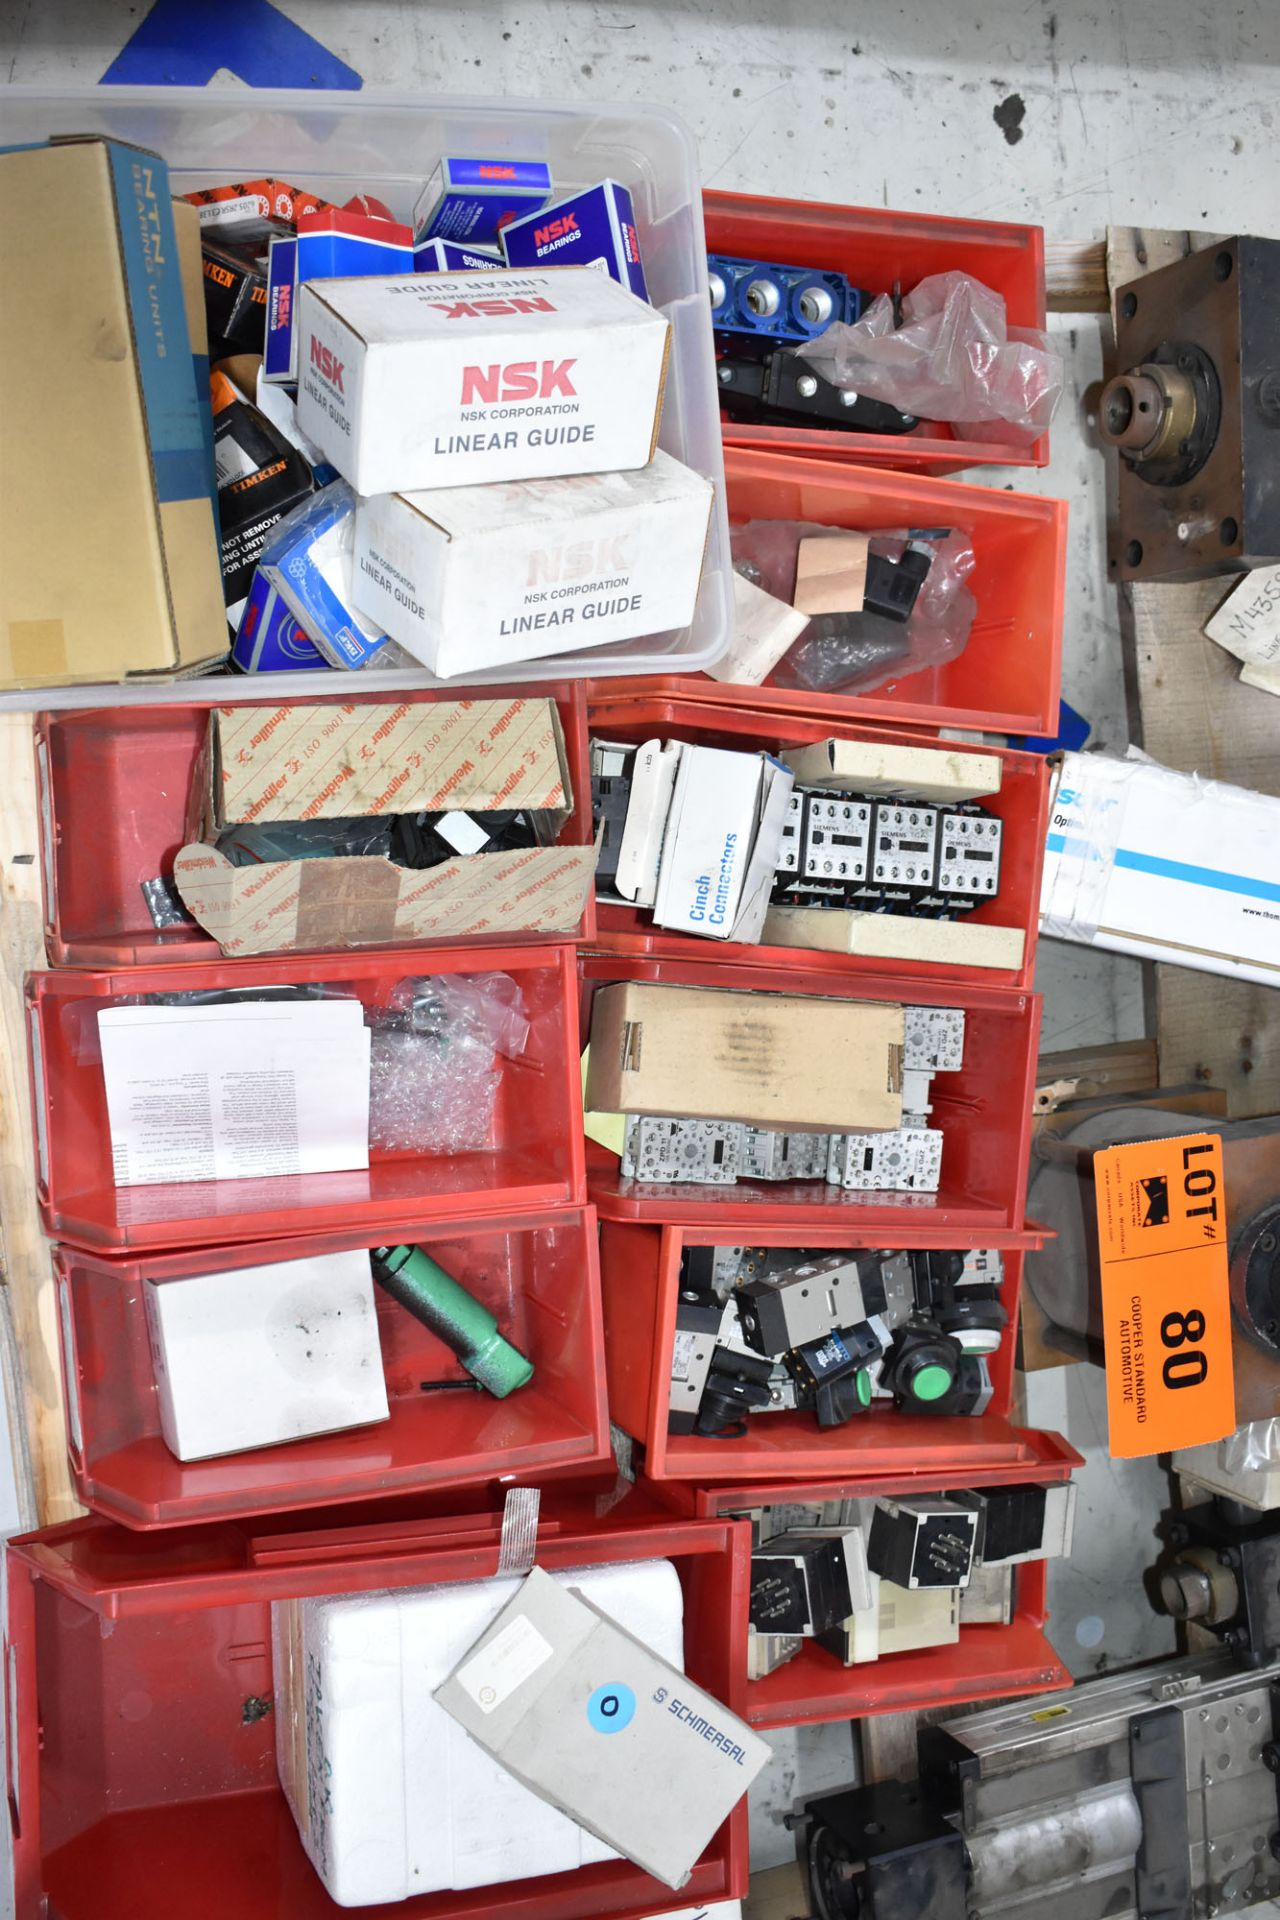 LOT/ PALLET WITH CONTENTS CONSISTING OF BEARINGS, CYLINDERS, AND EXTRUDER LINE COMPONENTS - Image 2 of 5